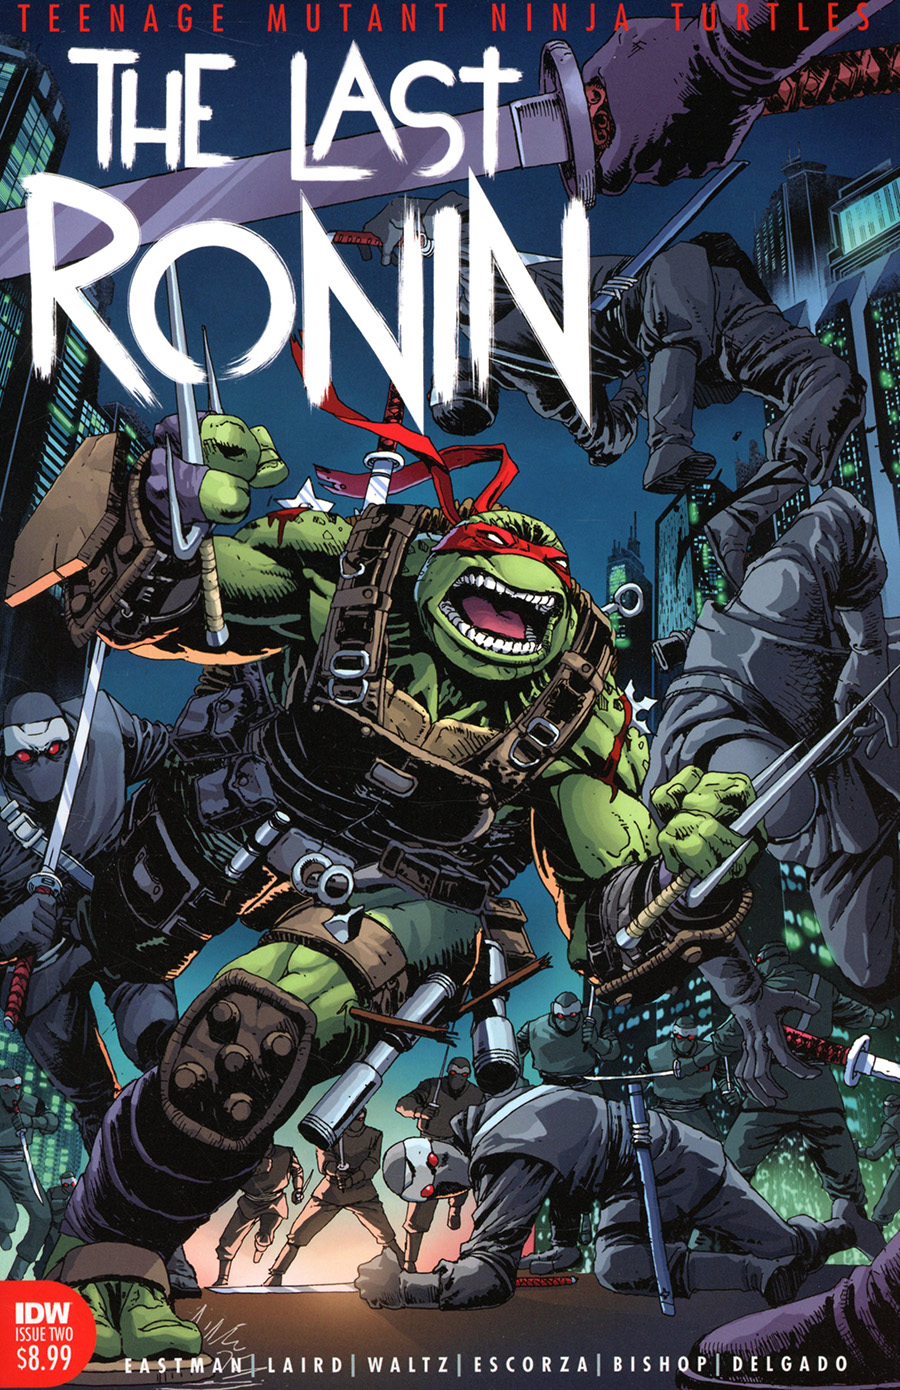 Teenage Mutant Ninja Turtles The Last Ronin #2 Cover A Regular Kevin Eastman & Andy Kuhn Cover